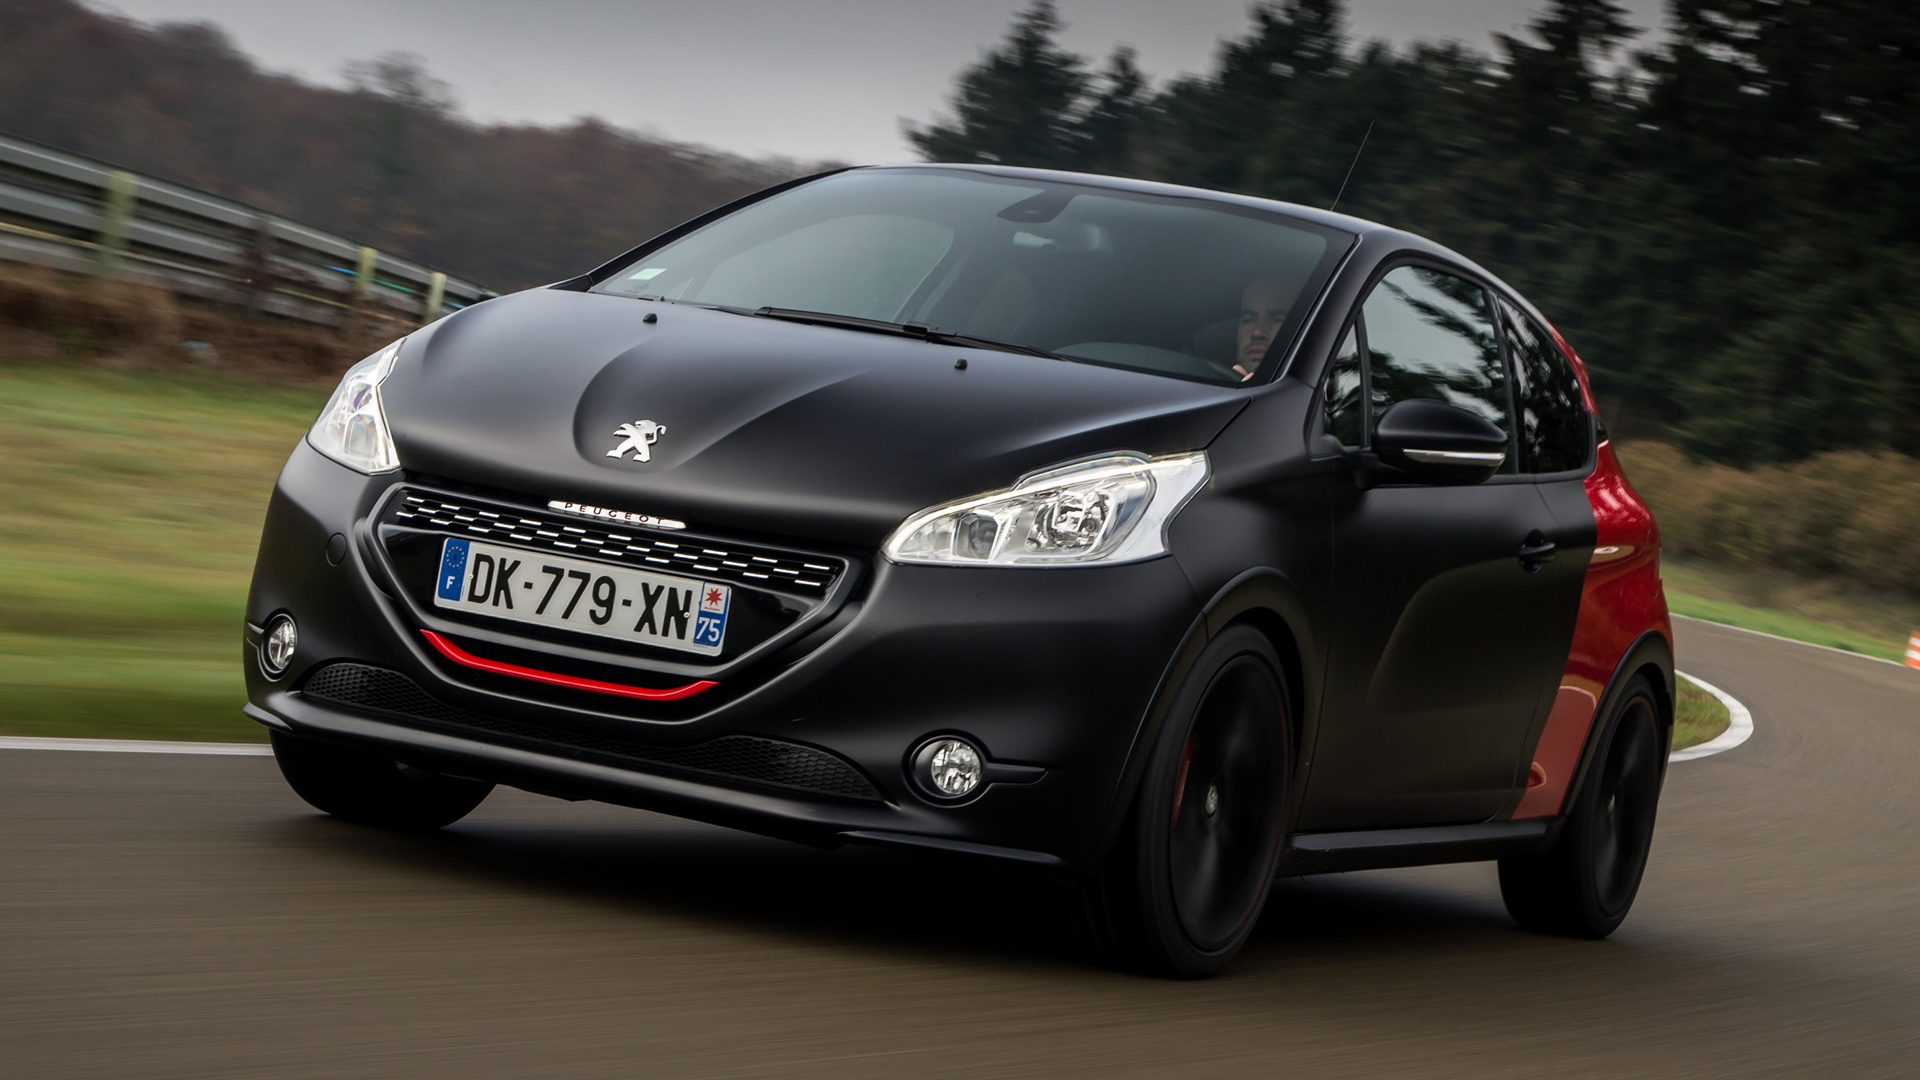 Peugeot 208 Gti 30th Anniversary 2014 Wallpapers And Hd